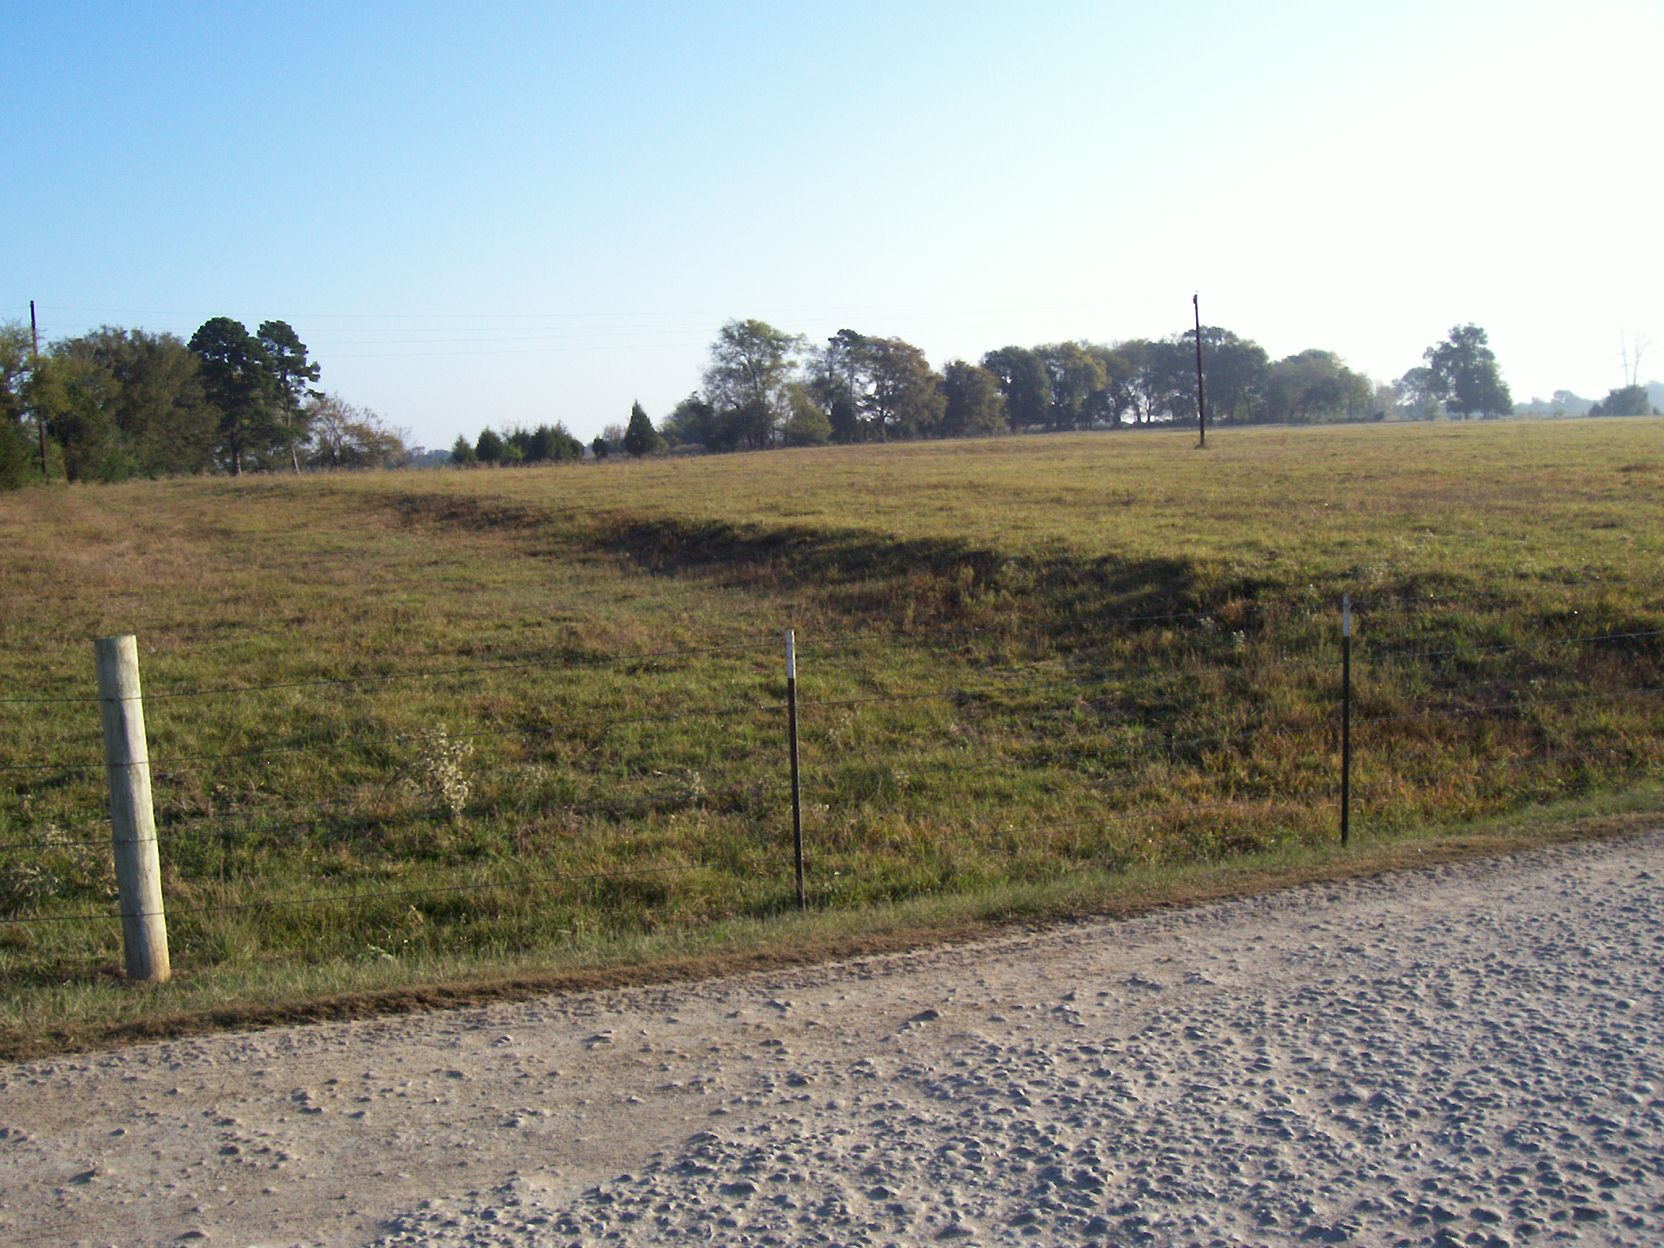 Ruts in Pastures Beat the Odds